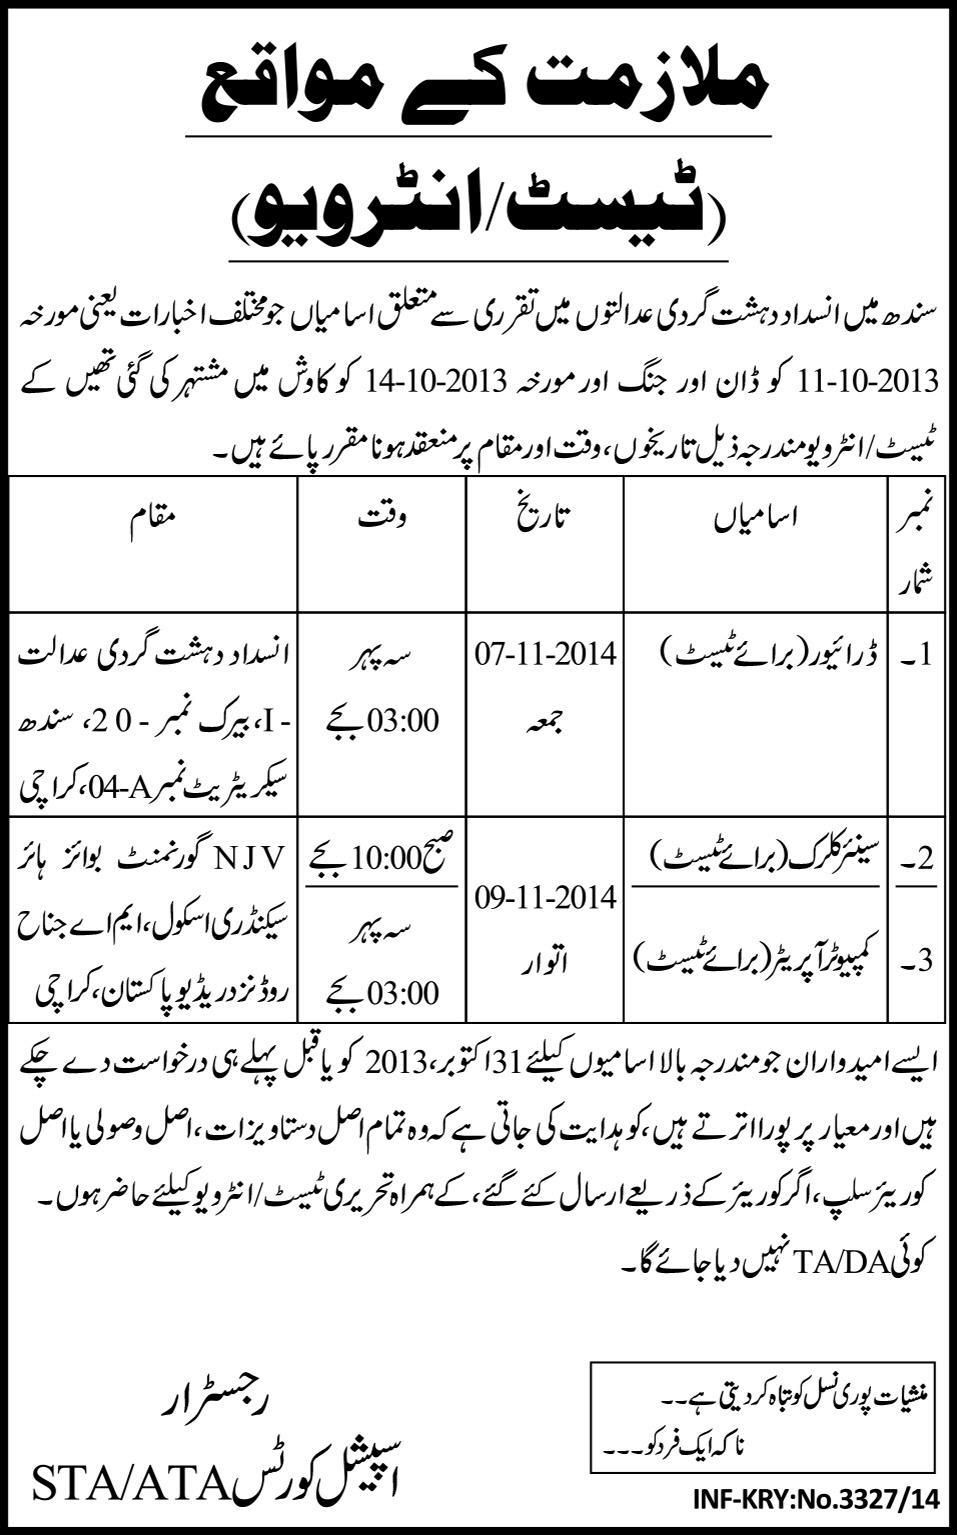 Sindh Anti Terrorism Court Jobs 2014 Test Interview Dates, Venue